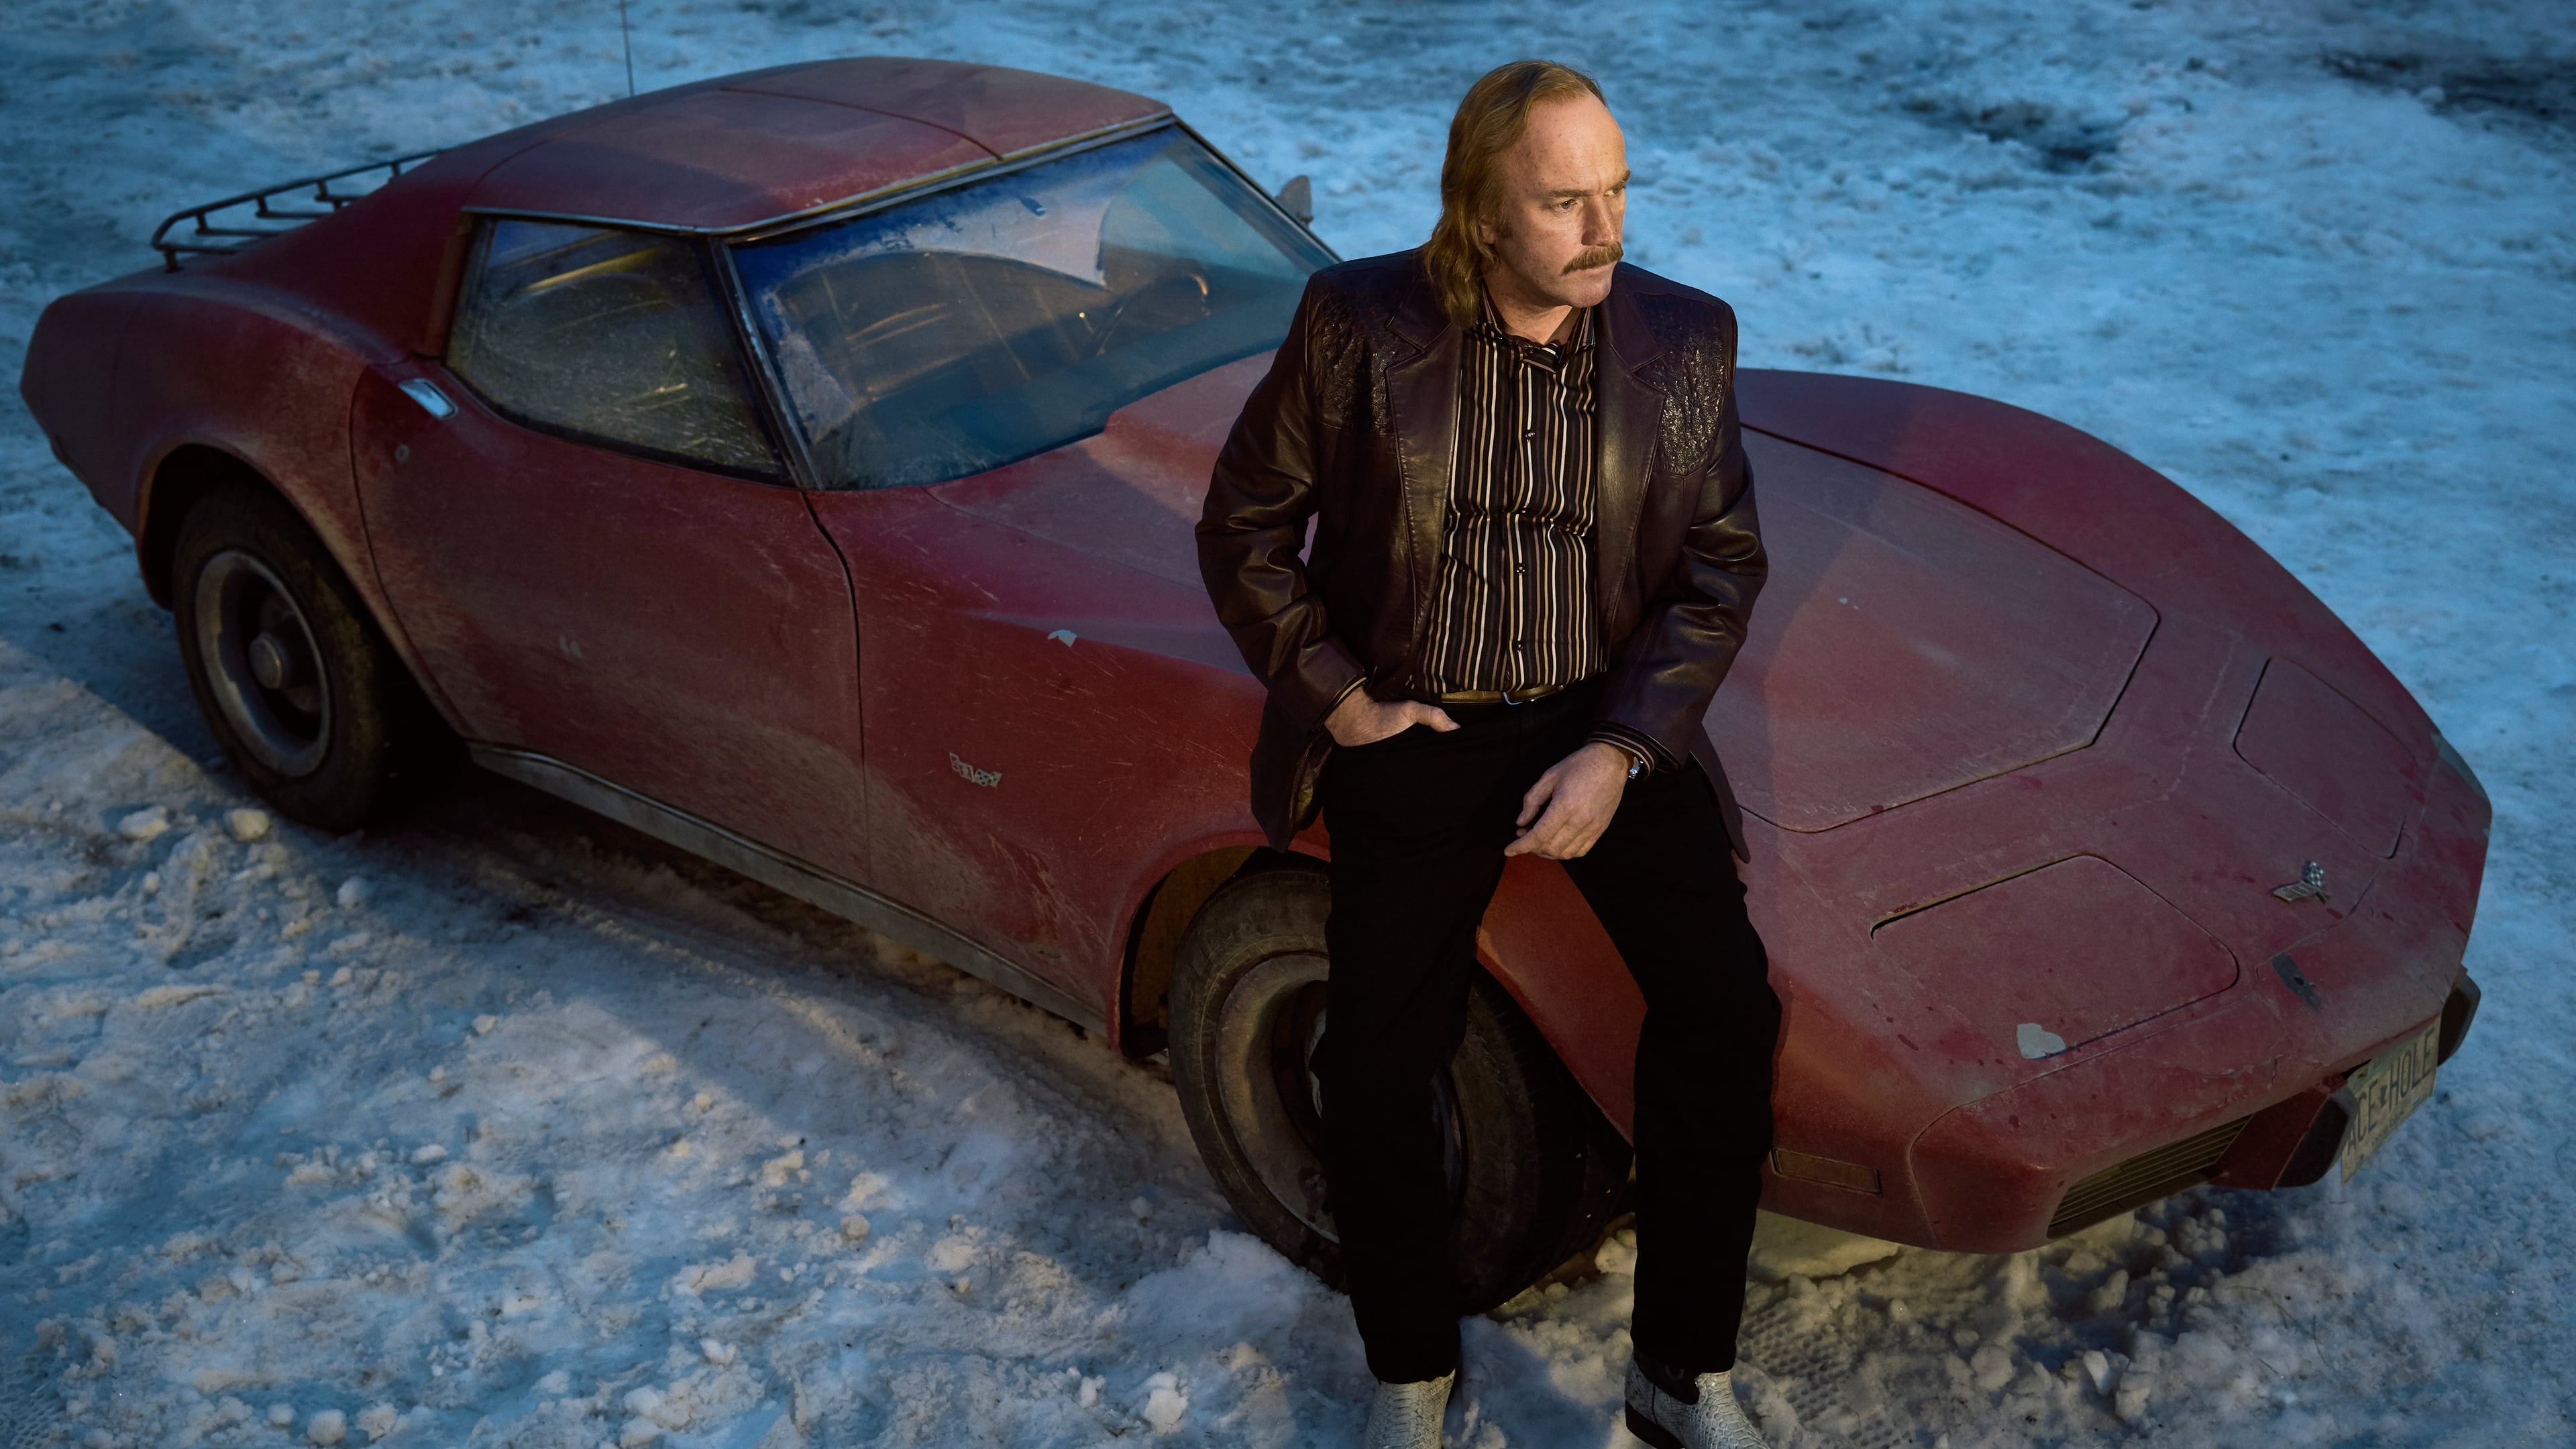 Fourth season Fargo to premiere near the end of September